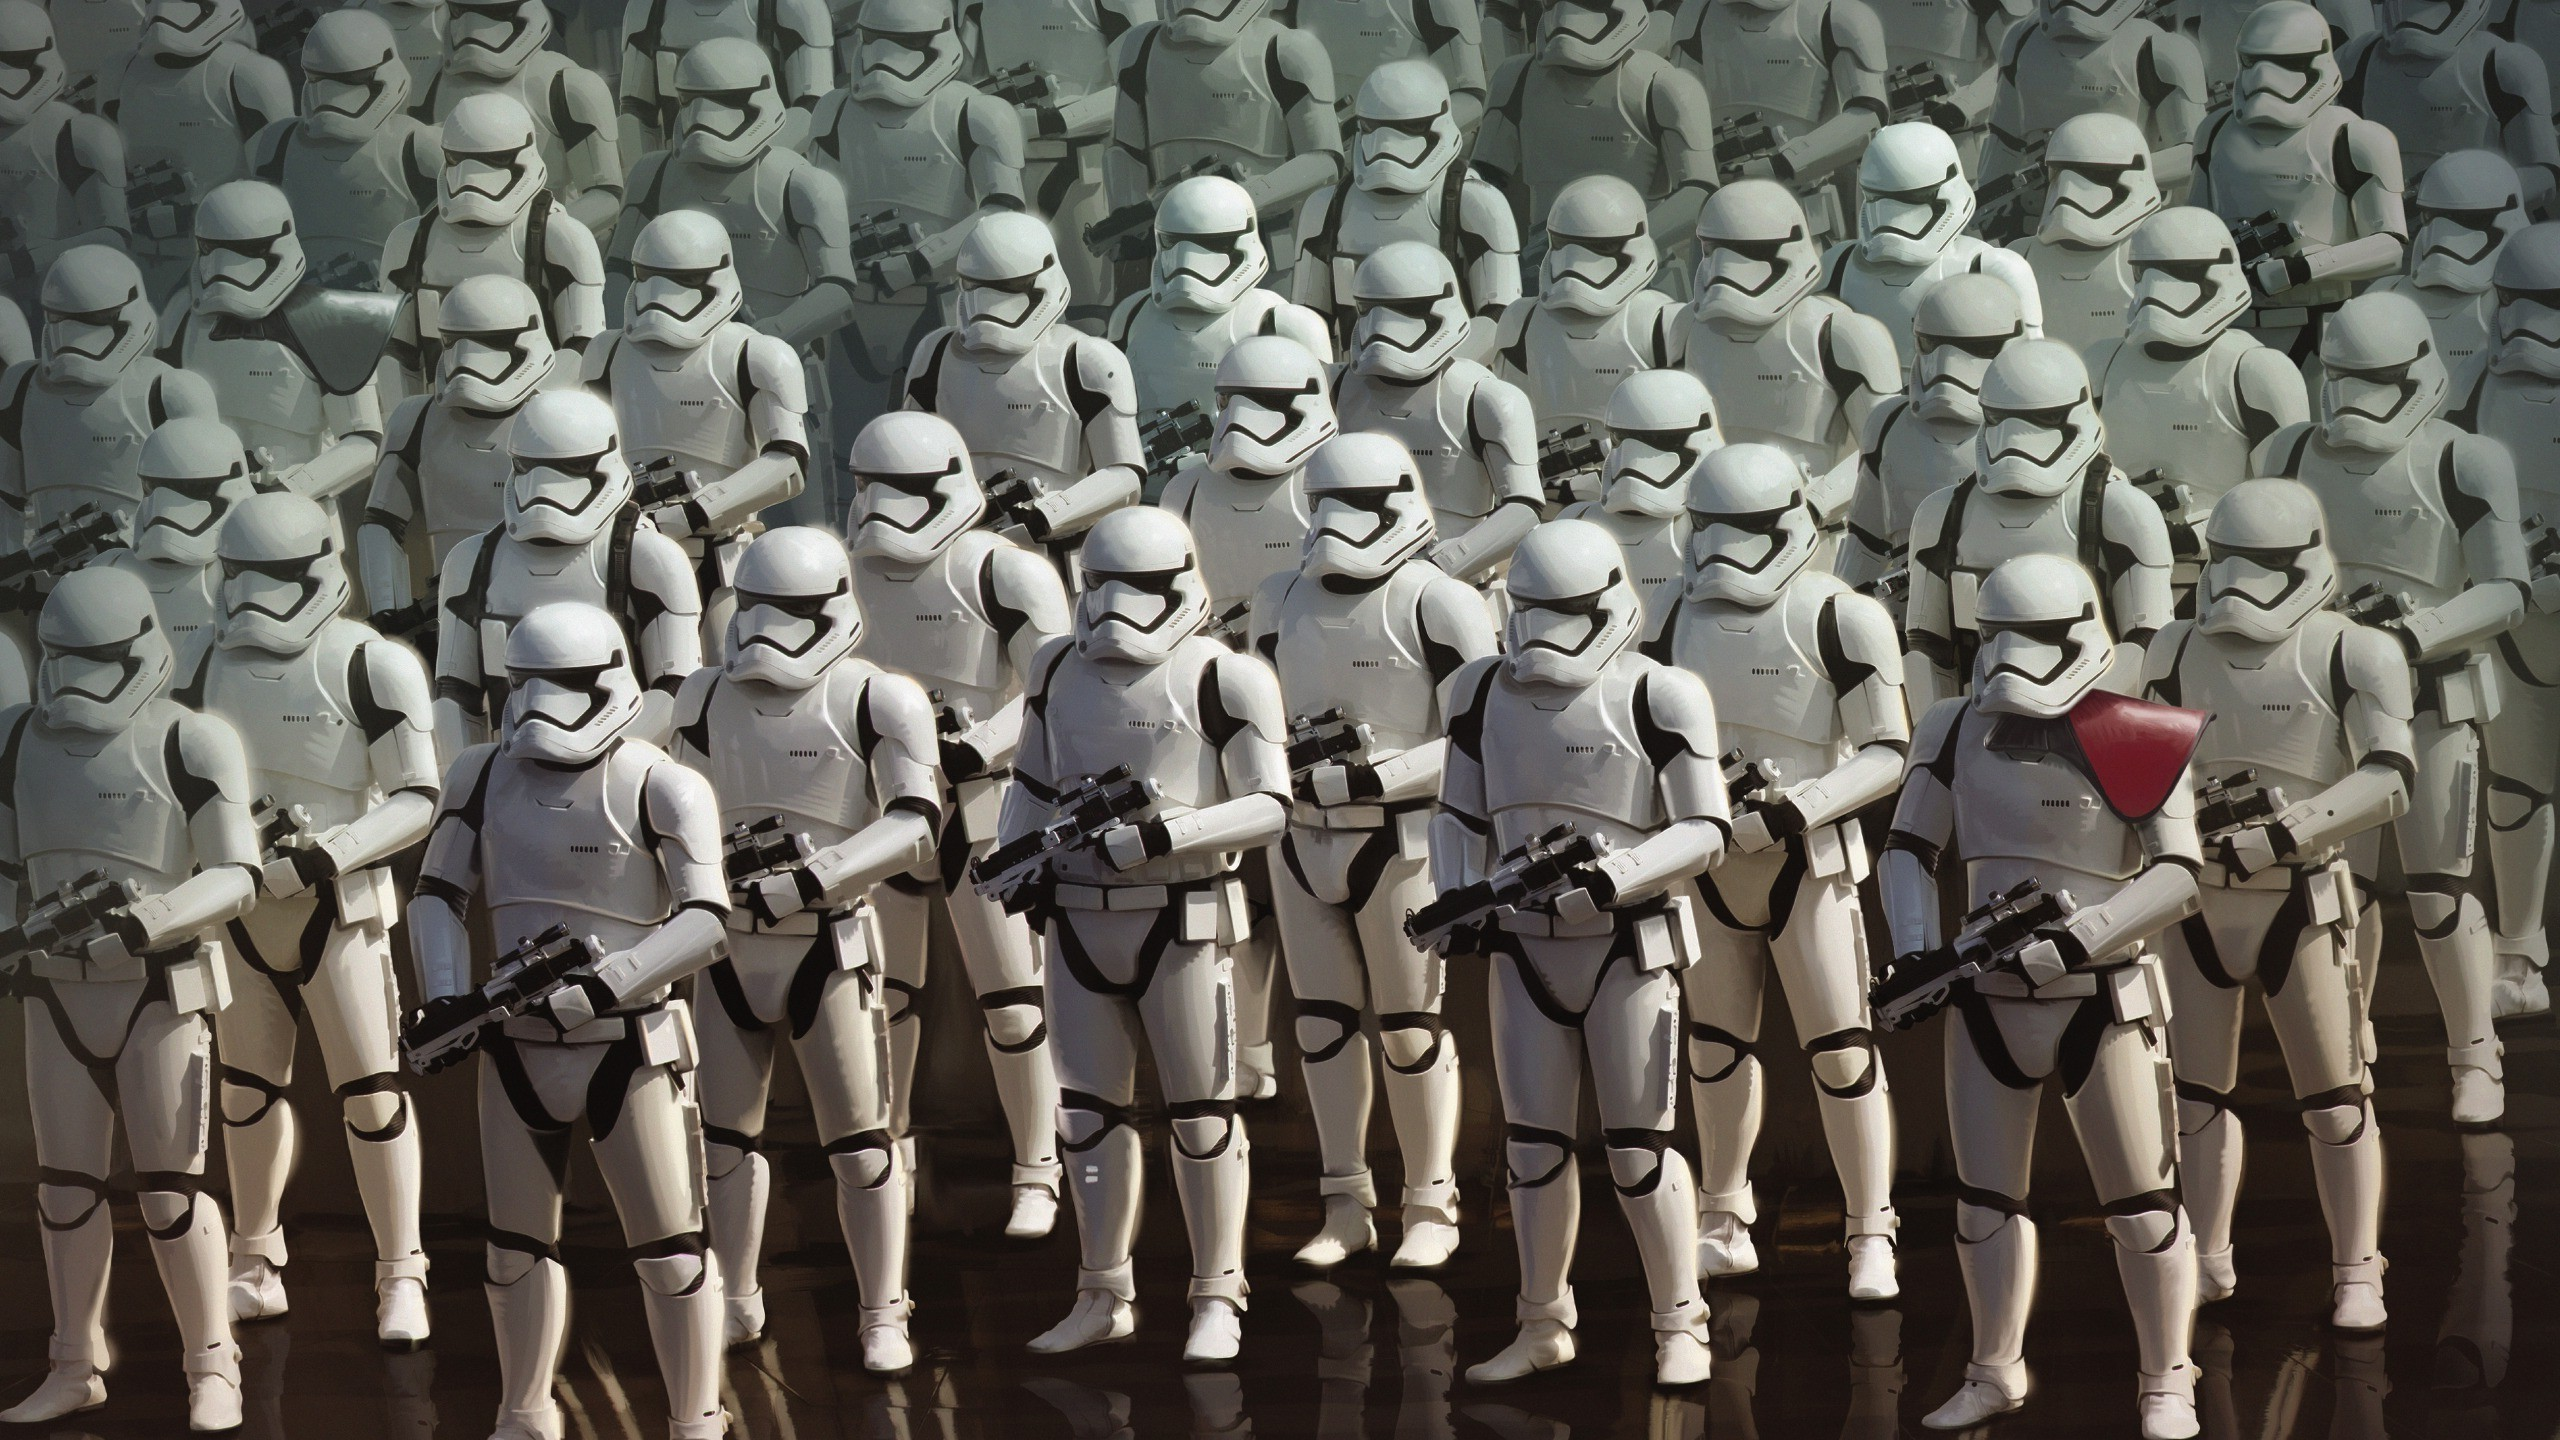 Star Wars, Star Wars: Episode VII The Force Awakens, Stormtrooper, Movies  Wallpapers HD / Desktop and Mobile Backgrounds